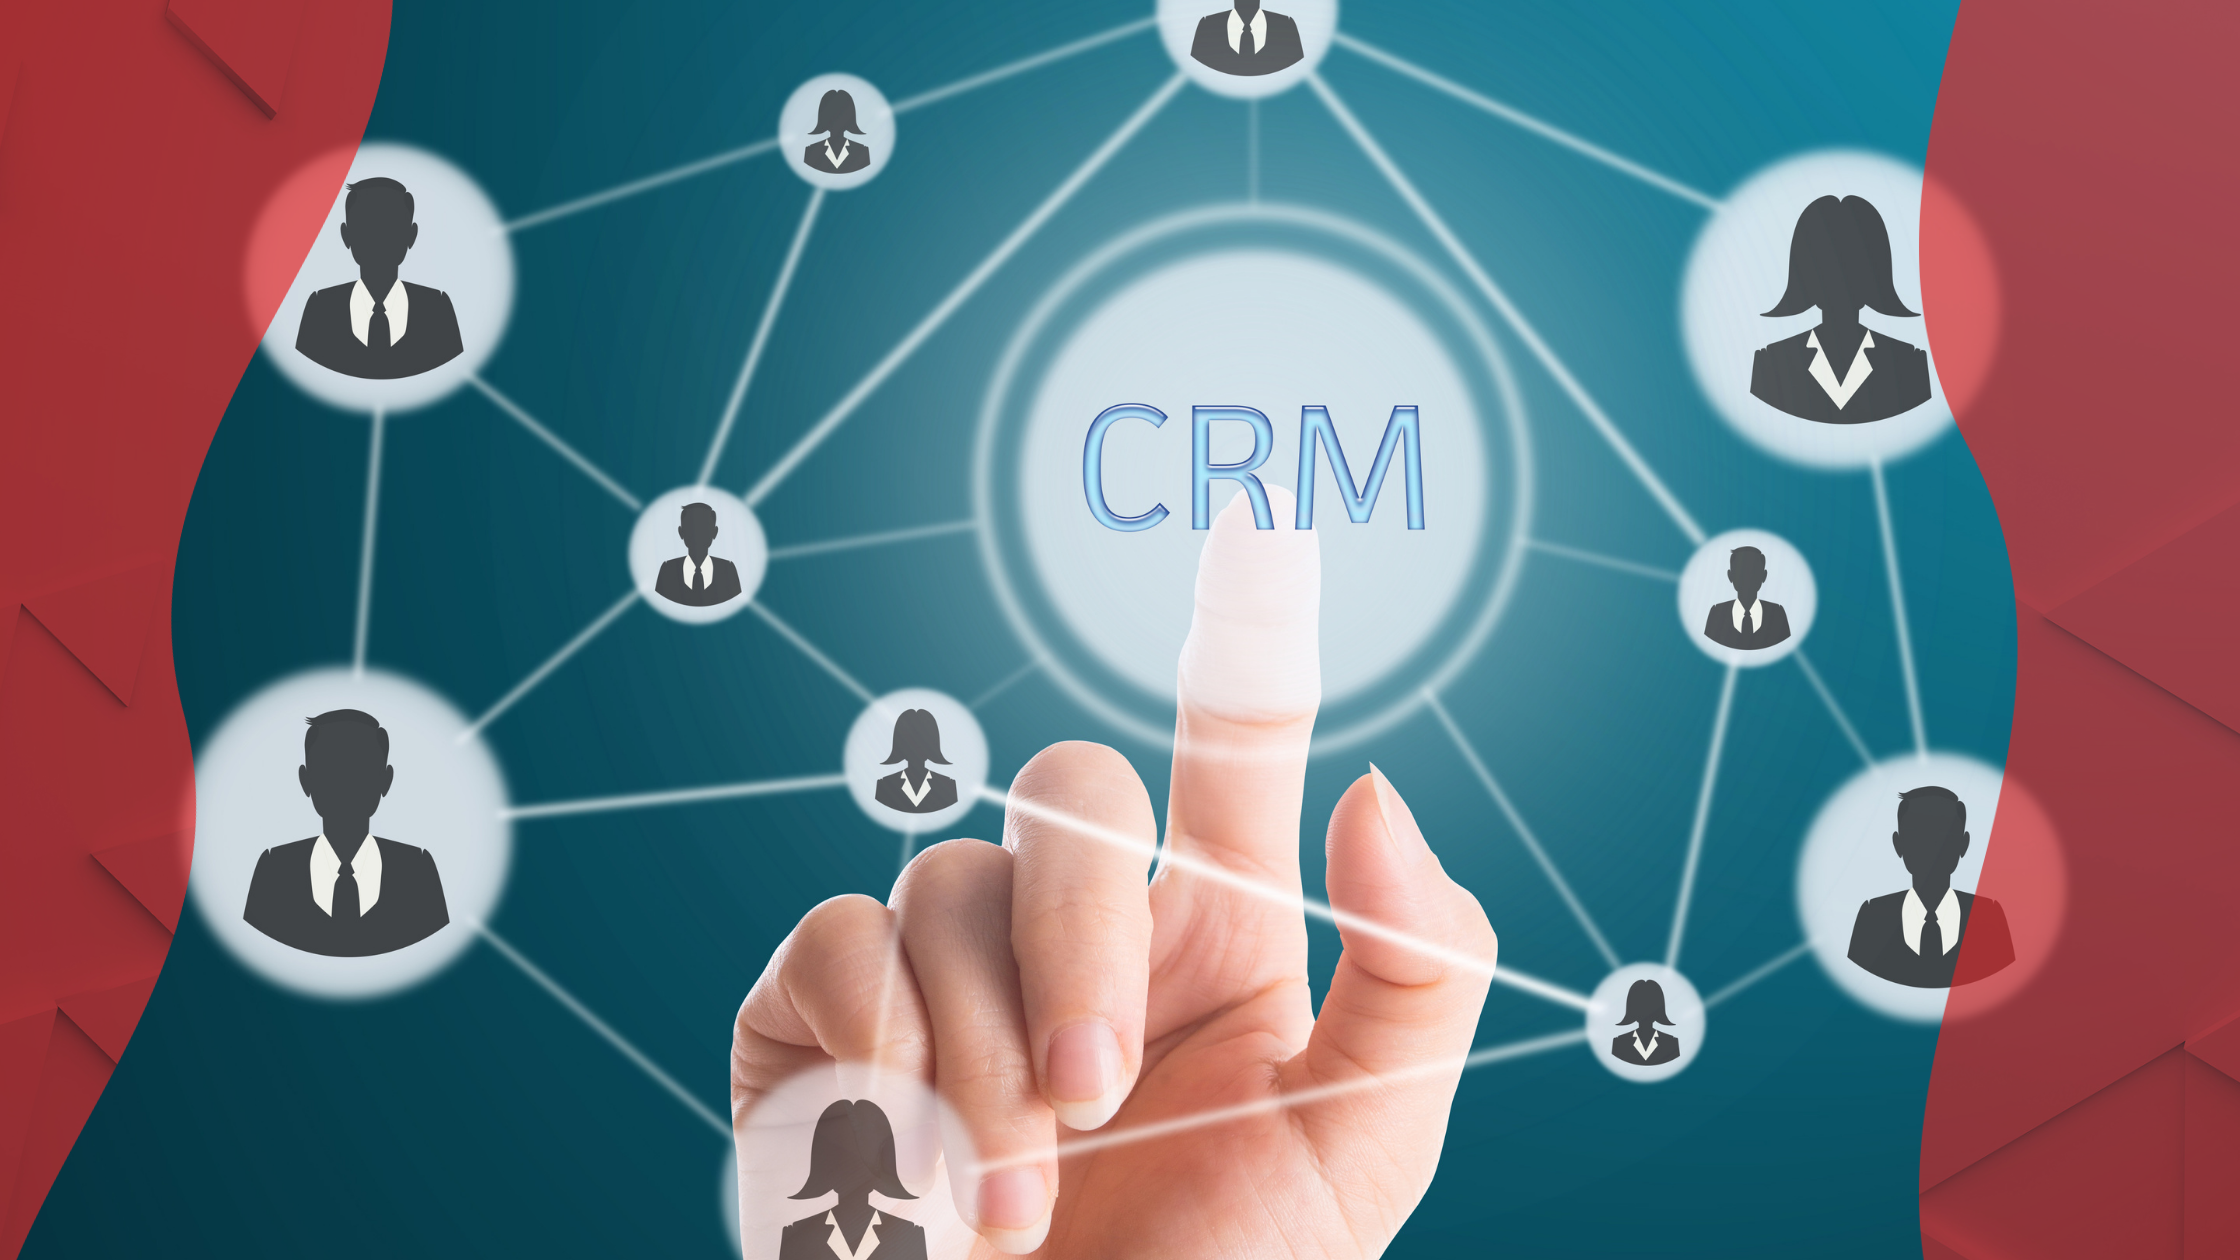 use a user-friendly CRM